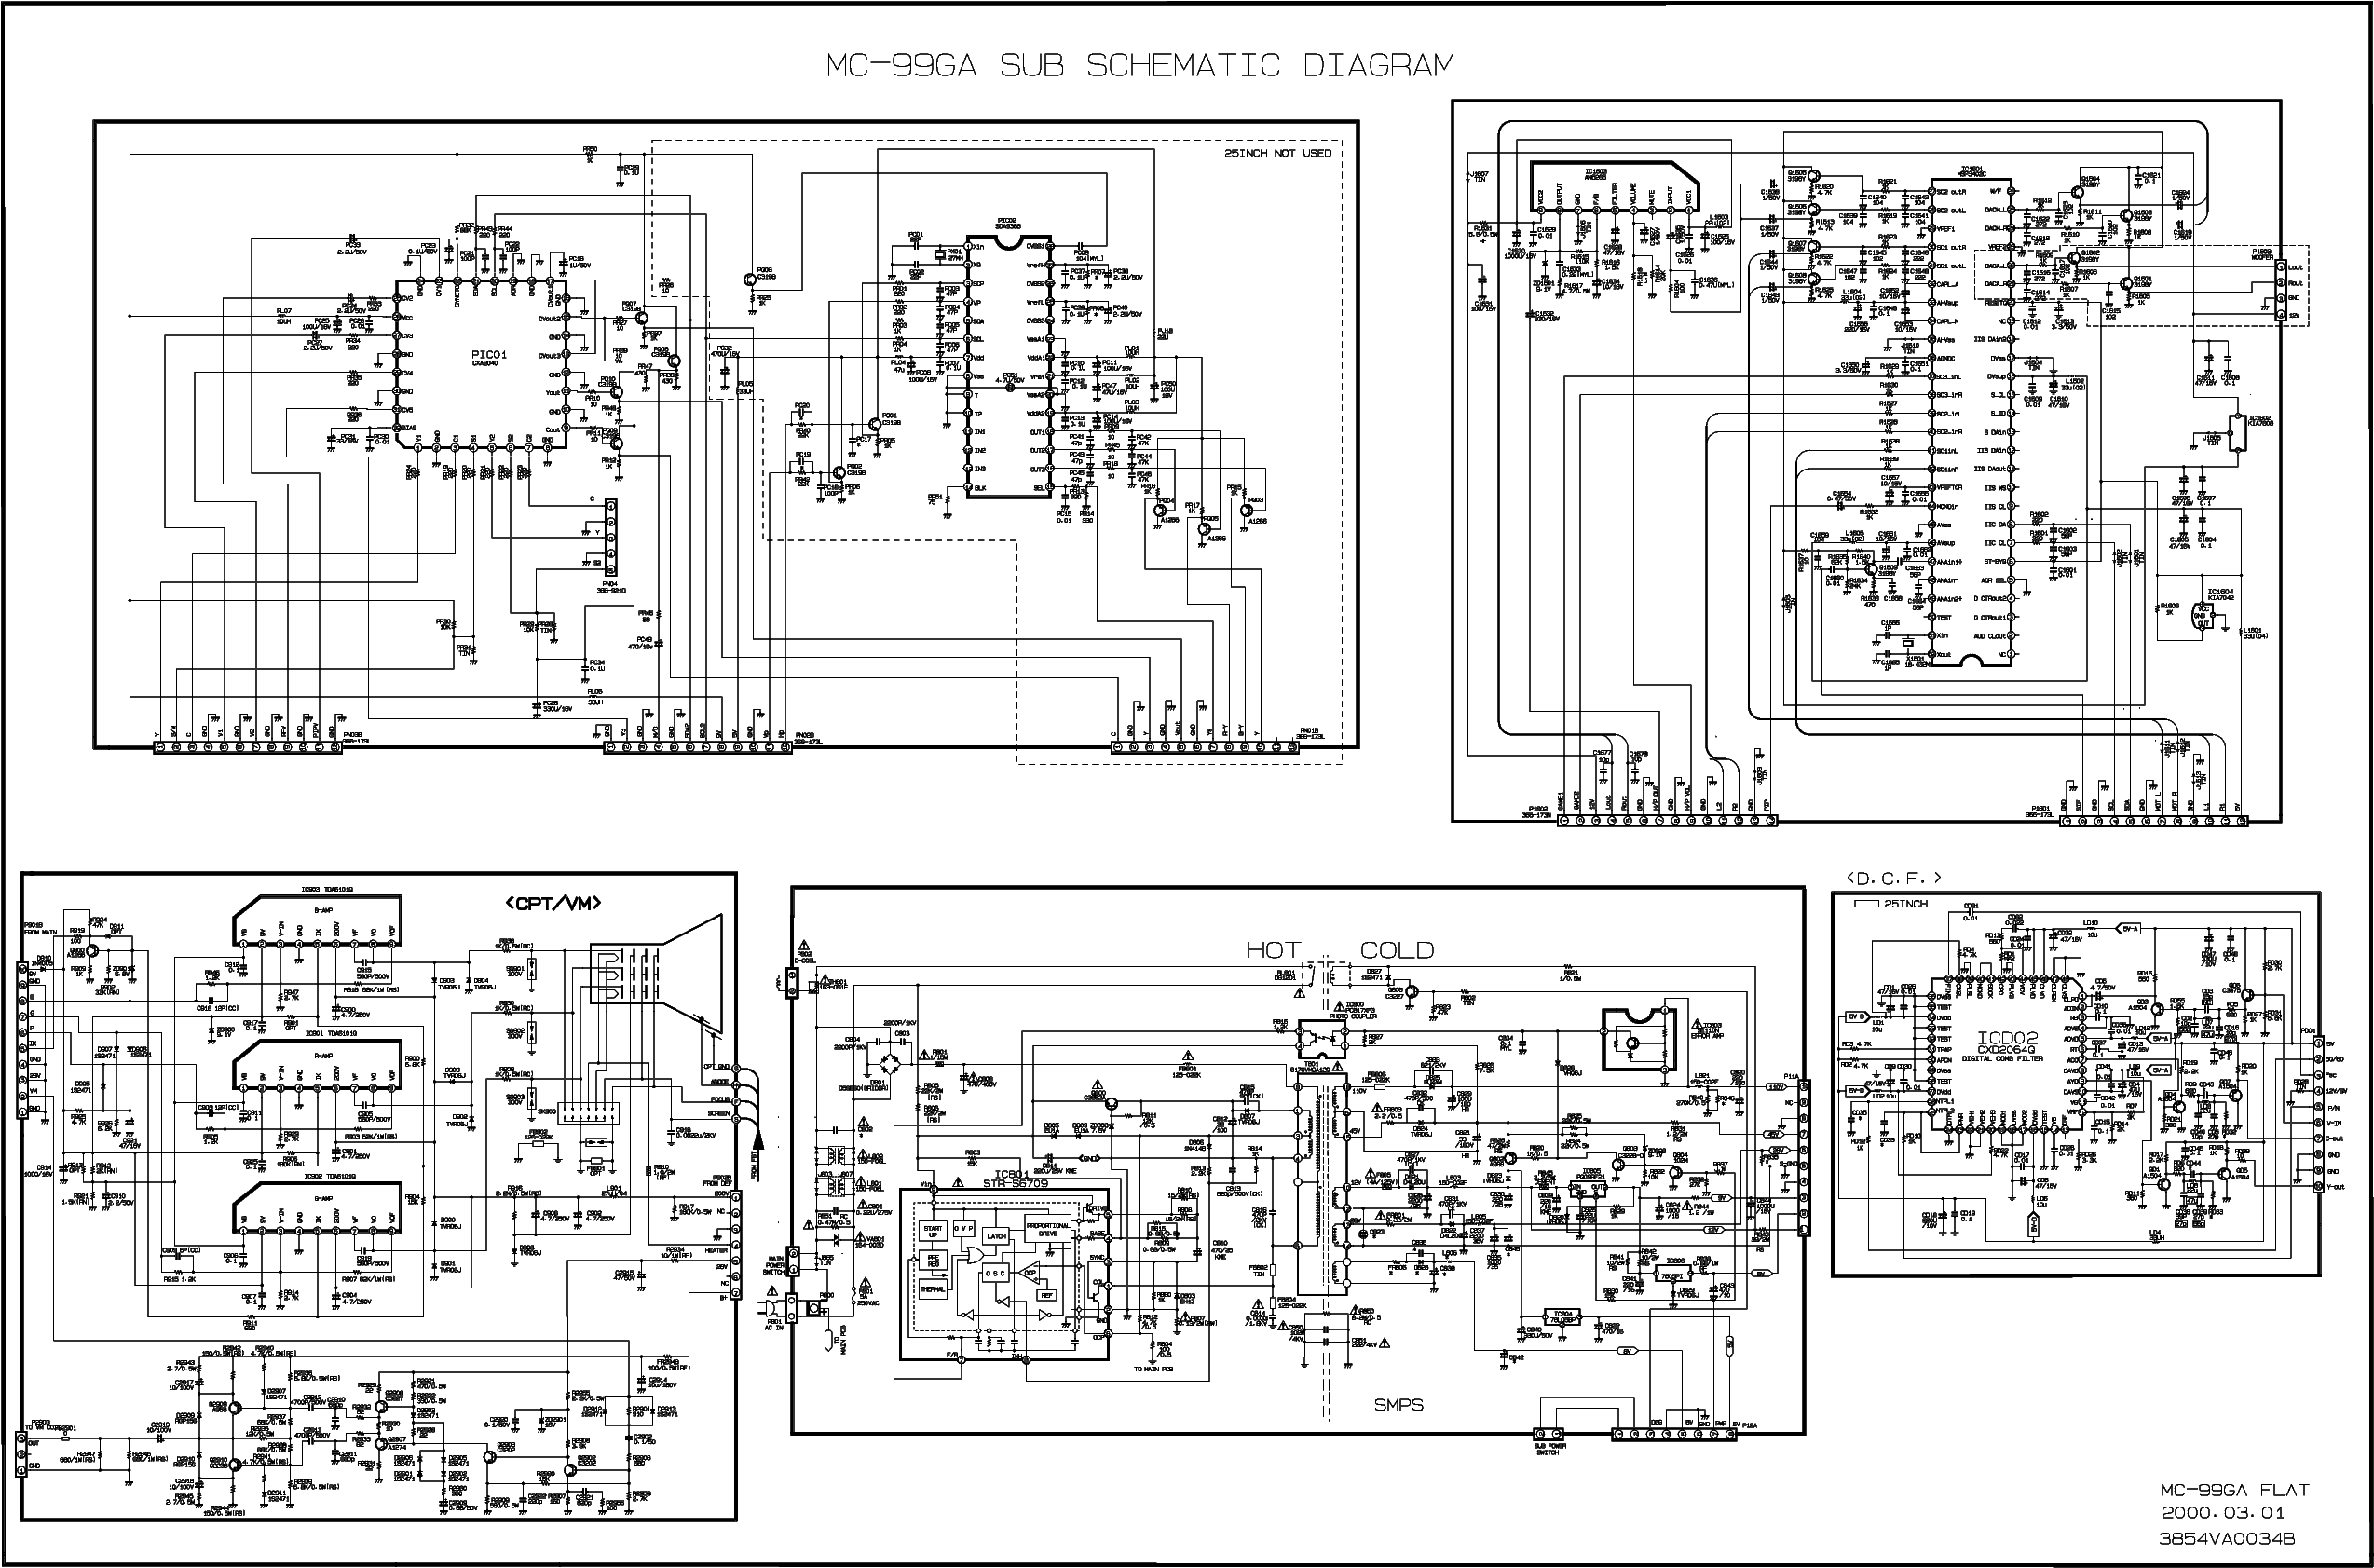 LG CHASSIS-MC-99GA Service Manual download, schematics